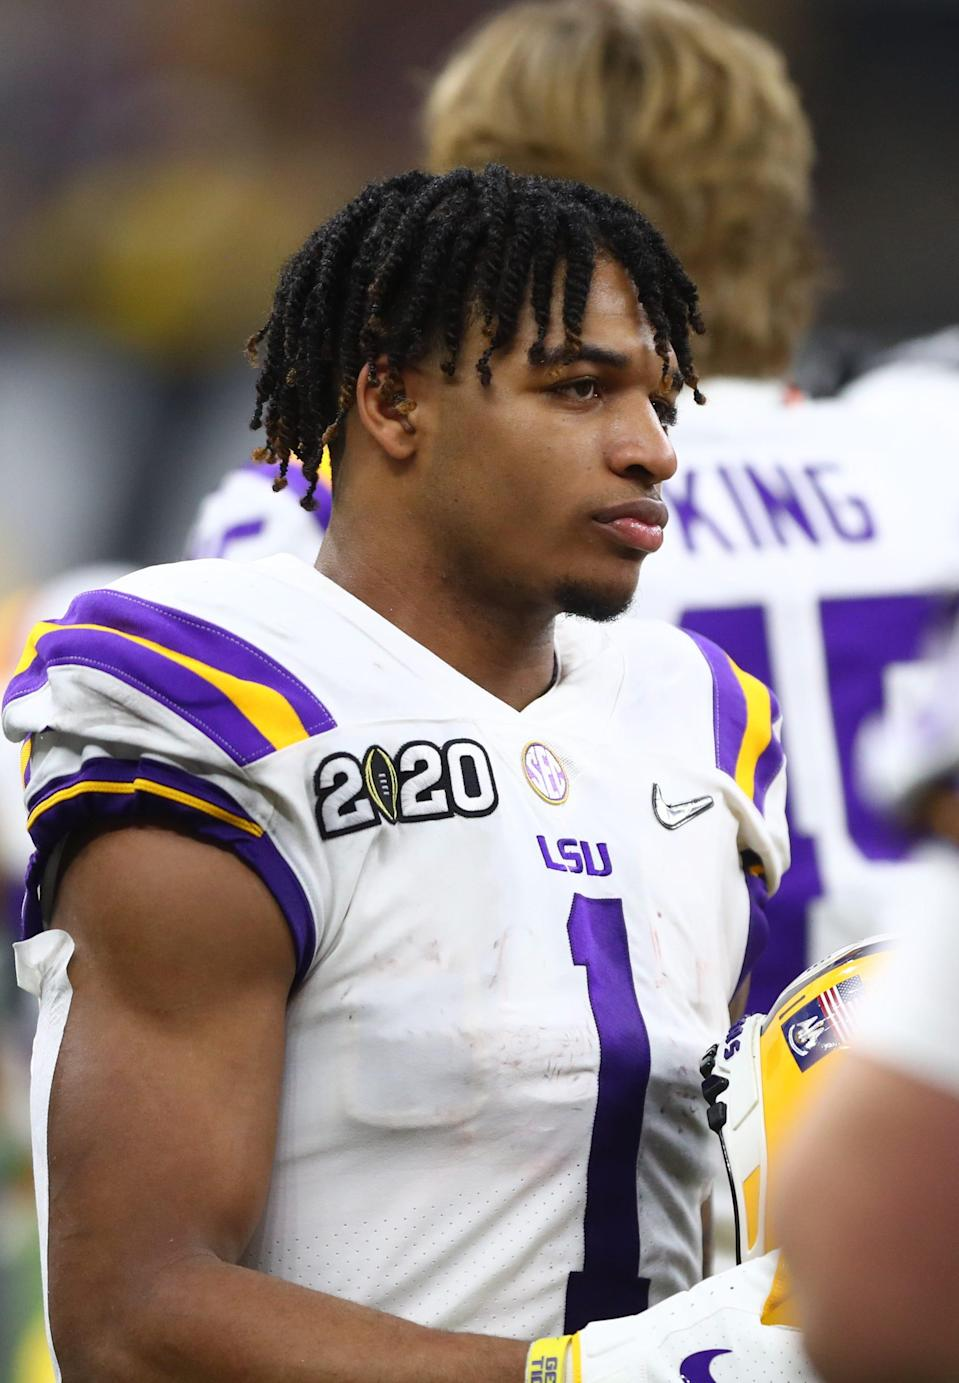 LSU receiver Ja'Marr Chase in the College Football Playoff national championship game Jan. 13, 2020 in New Orleans, Louisiana.